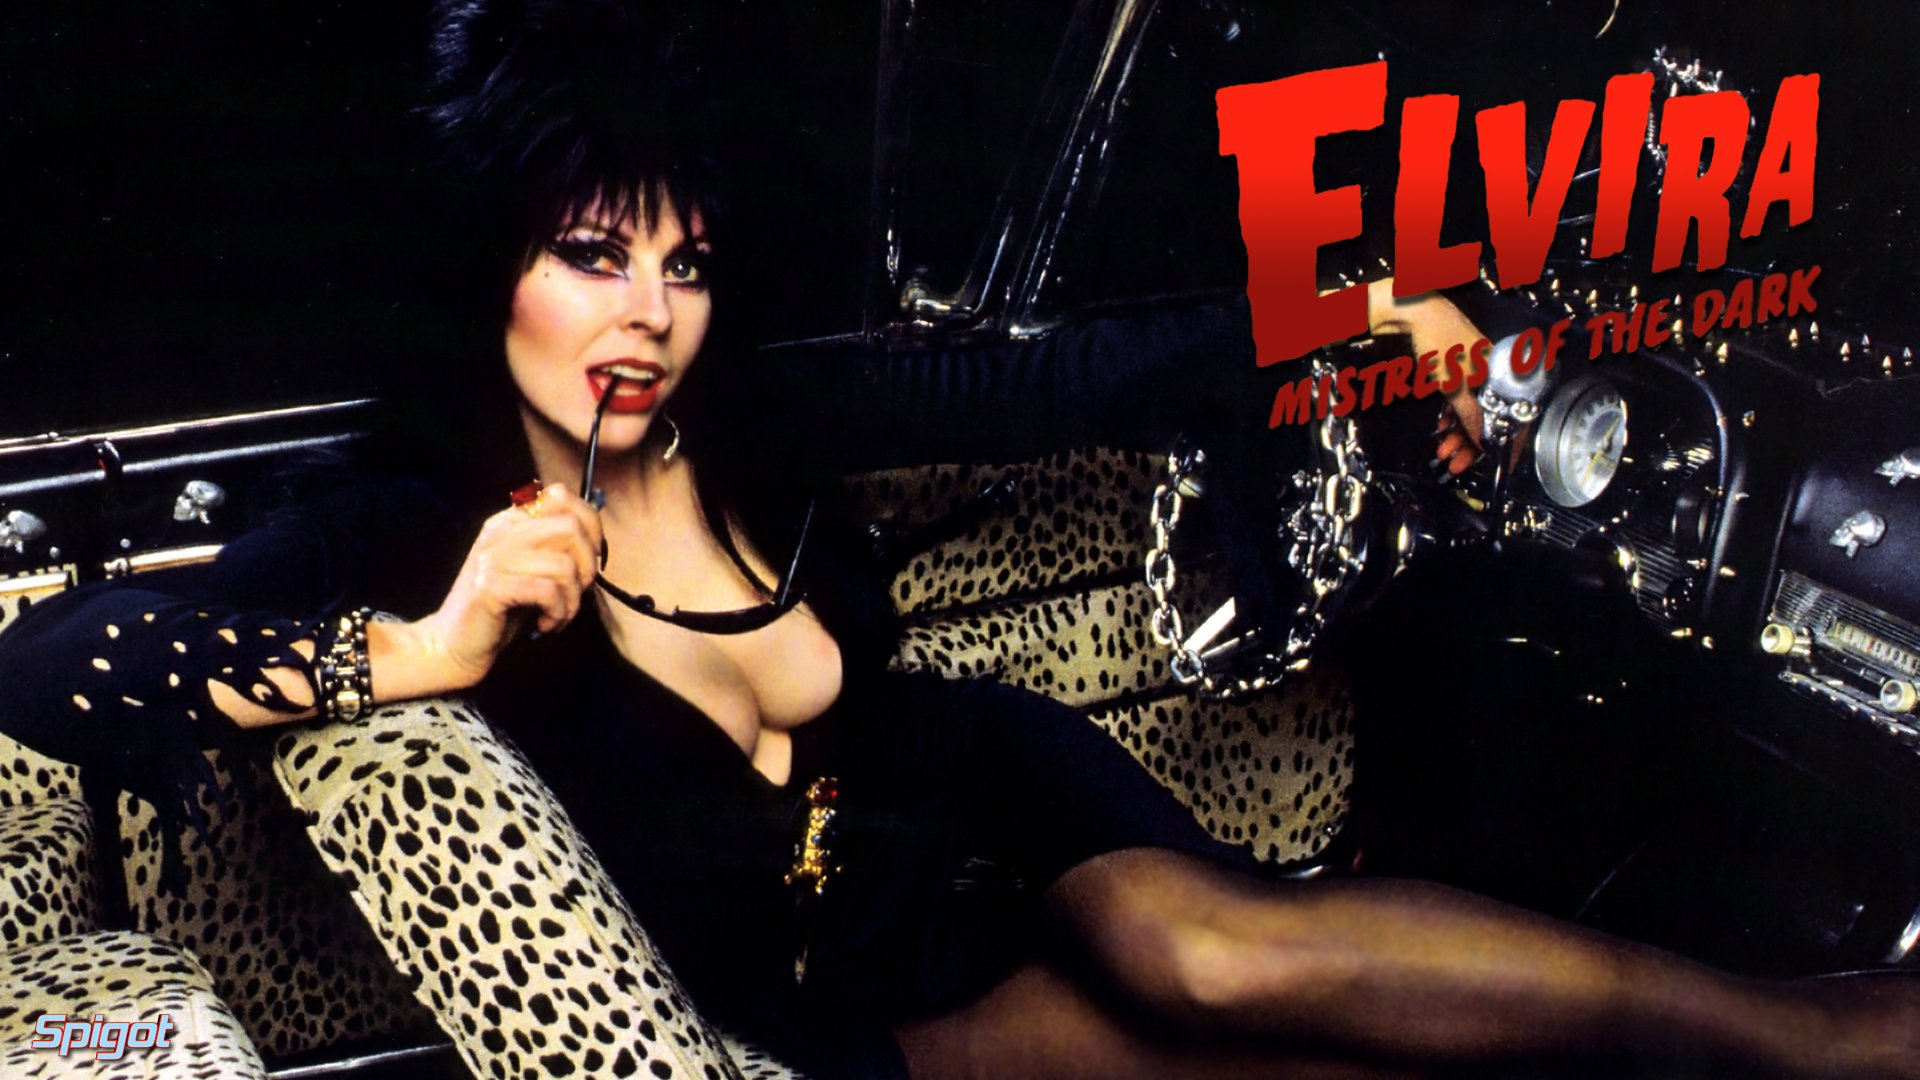 Elvira Mistress Of The Dark Wallpaper Another elvira wallpaper for 1920x1080